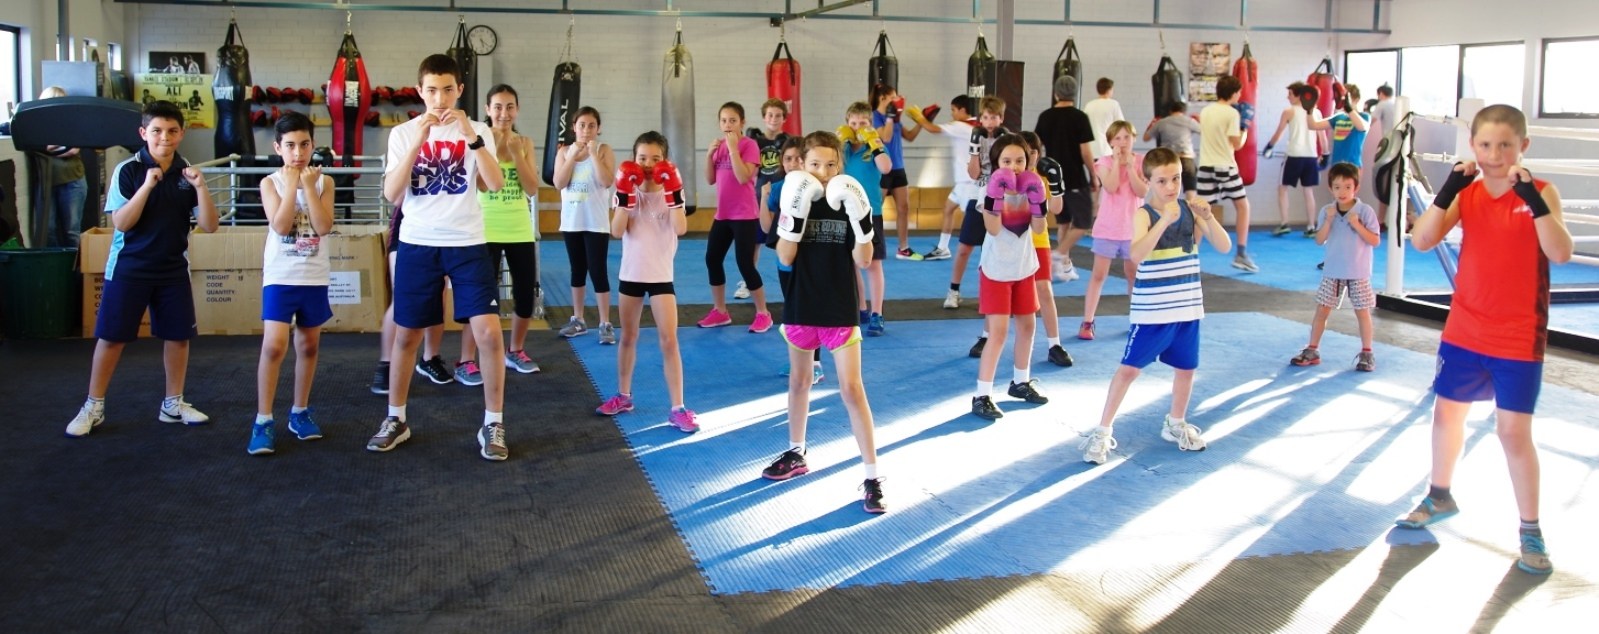 Children boxing class at Premier boxing club